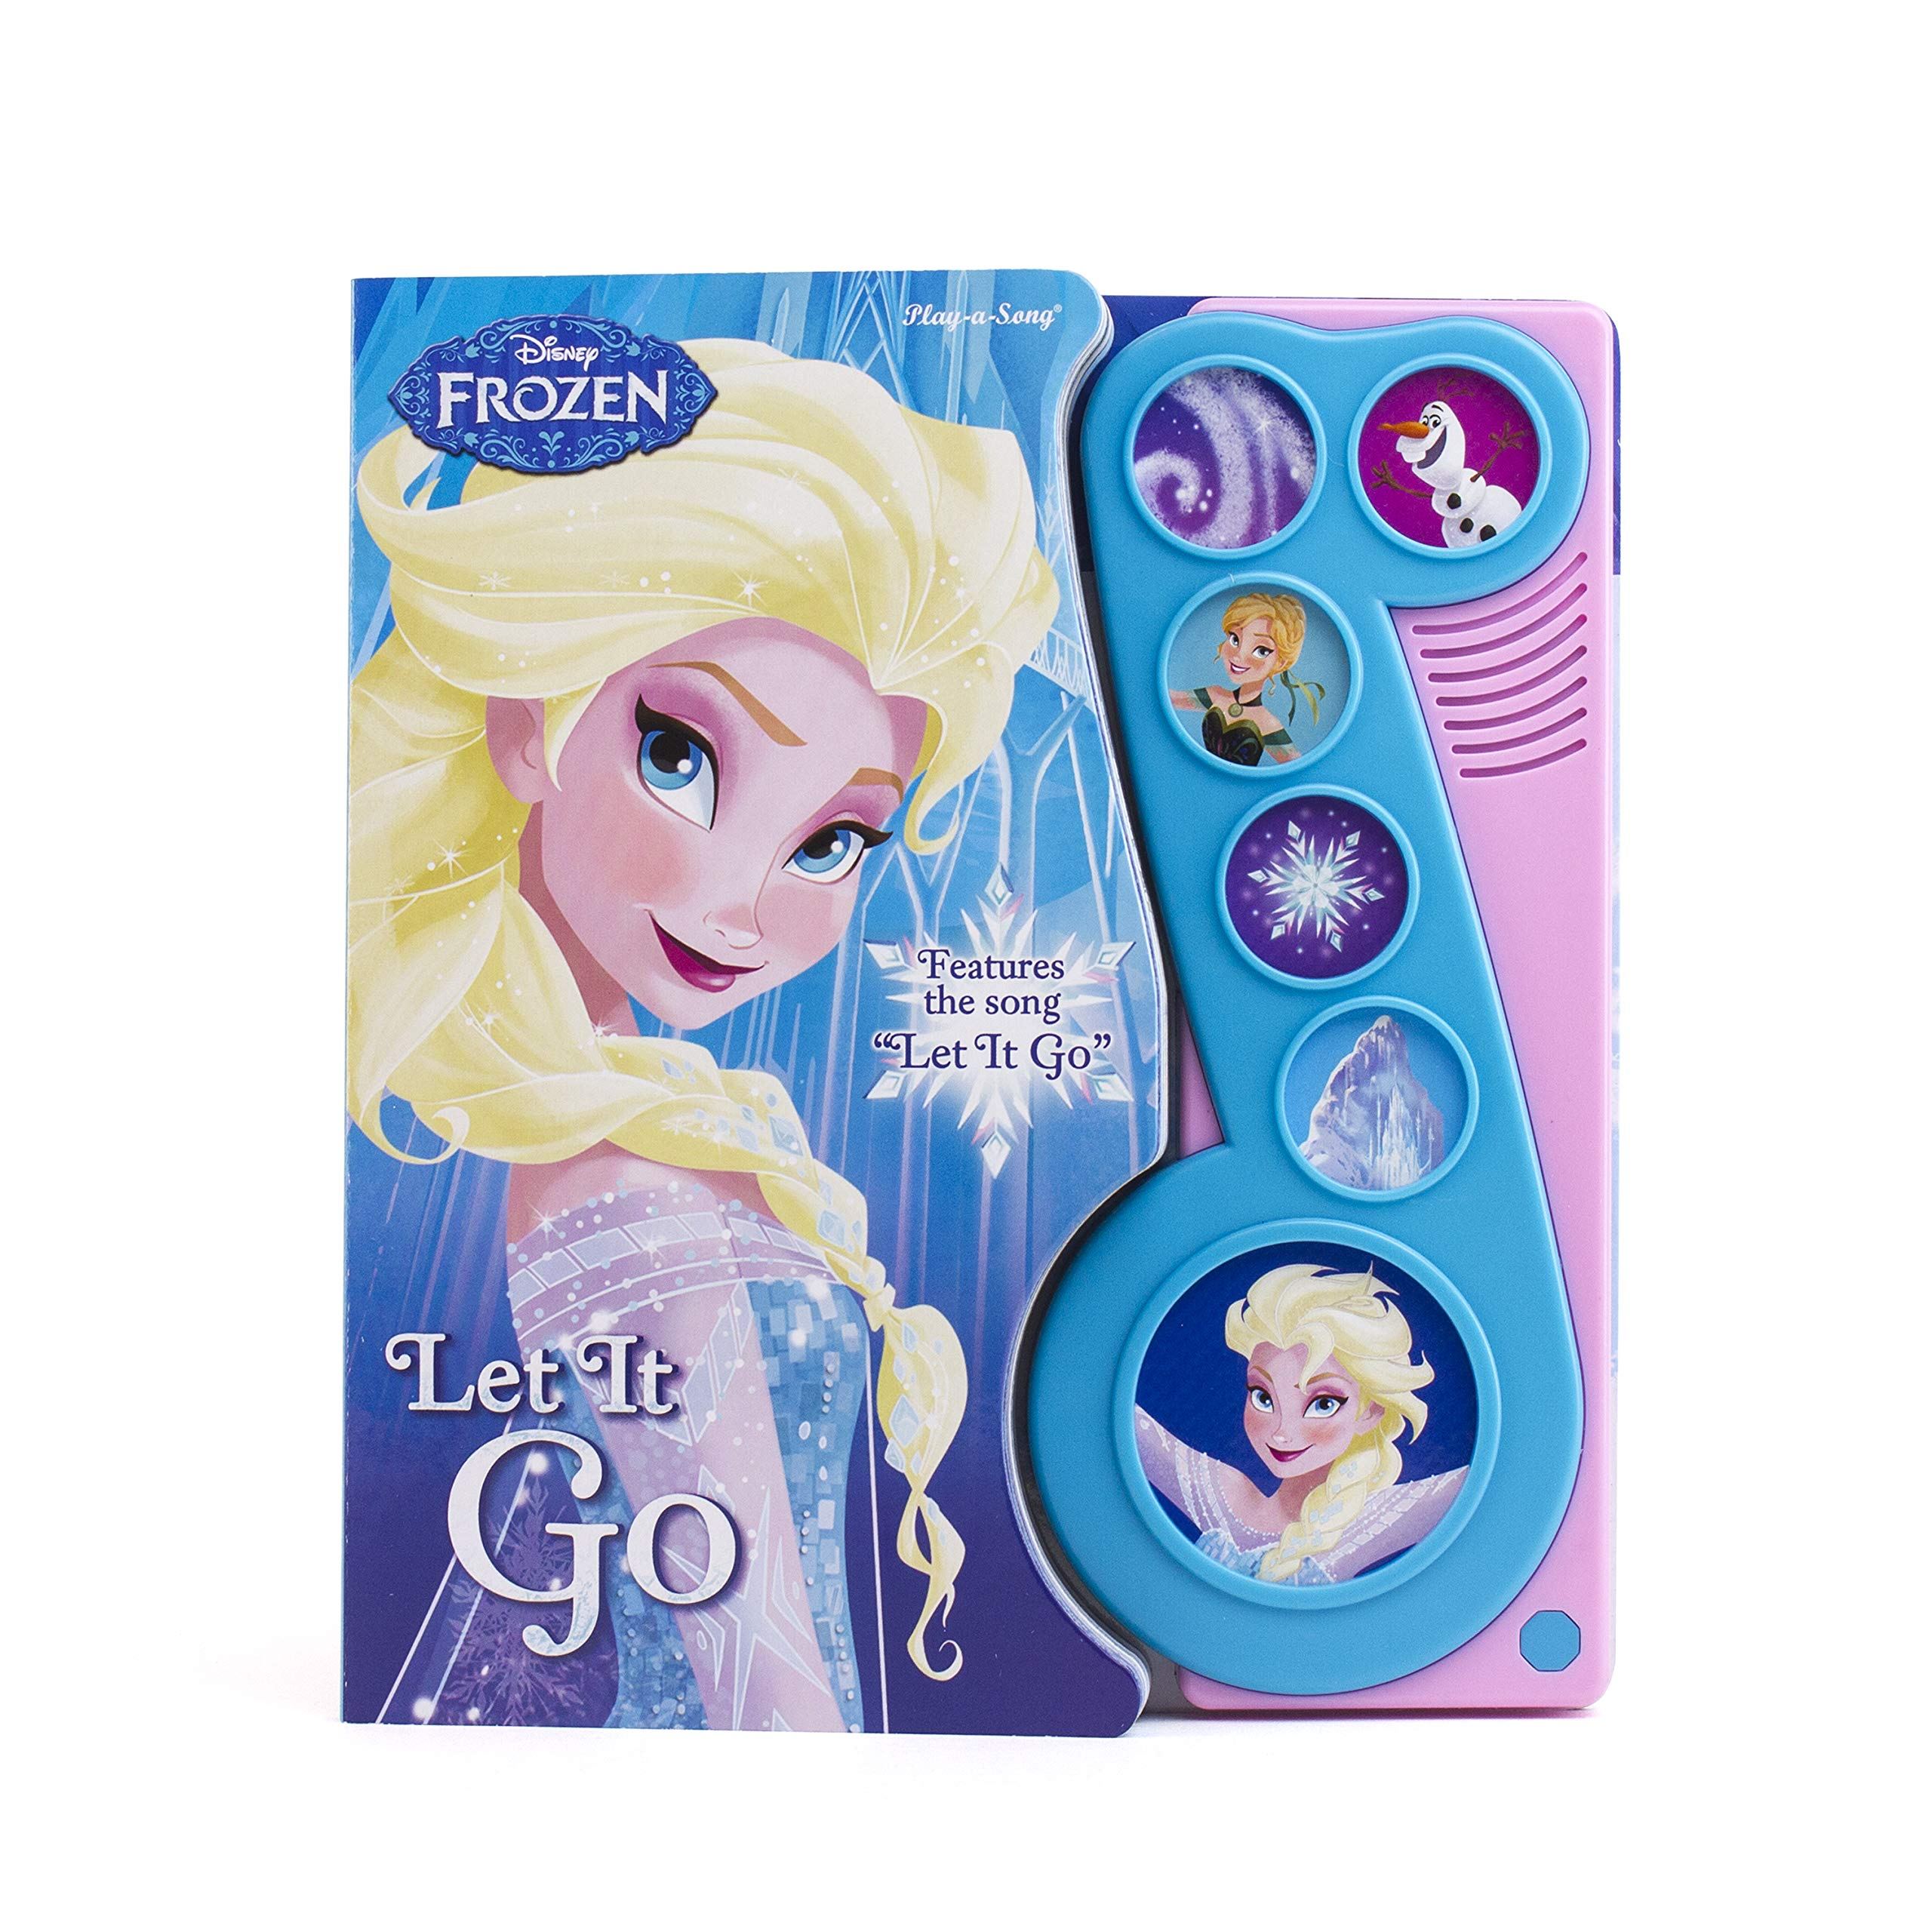 Frozen Let It Go Little Music Note Sound Book by Pl Kids (Image #1)